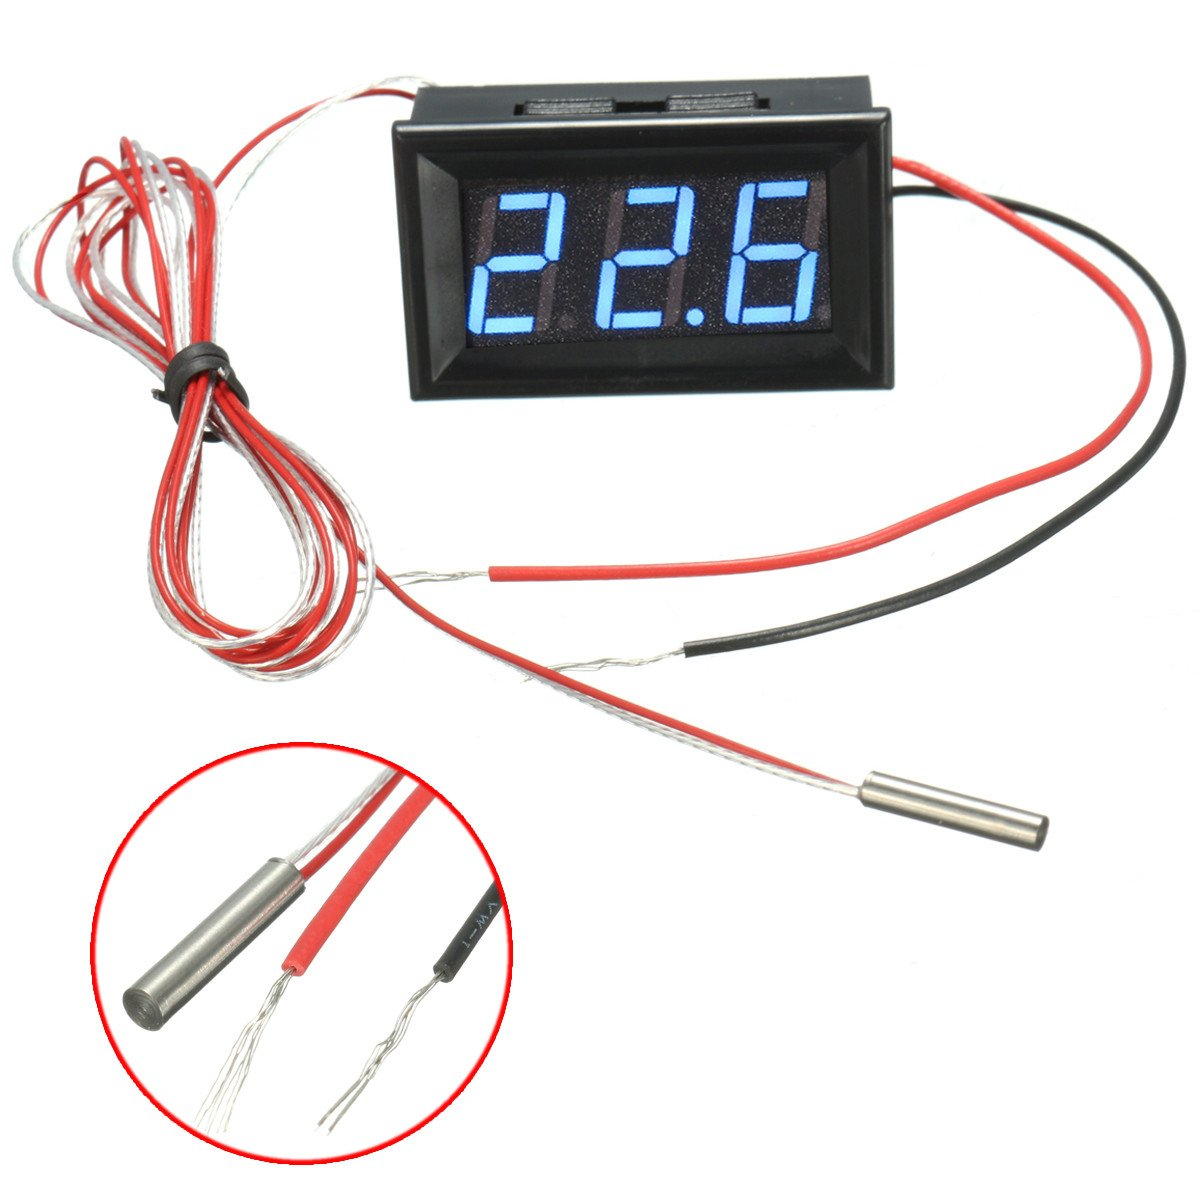 0.56inch 3 Bit -200~450℃ Digital LED Thermometer Temerature Tester PT100 Blue Backlight by GIMAX (Image #7)